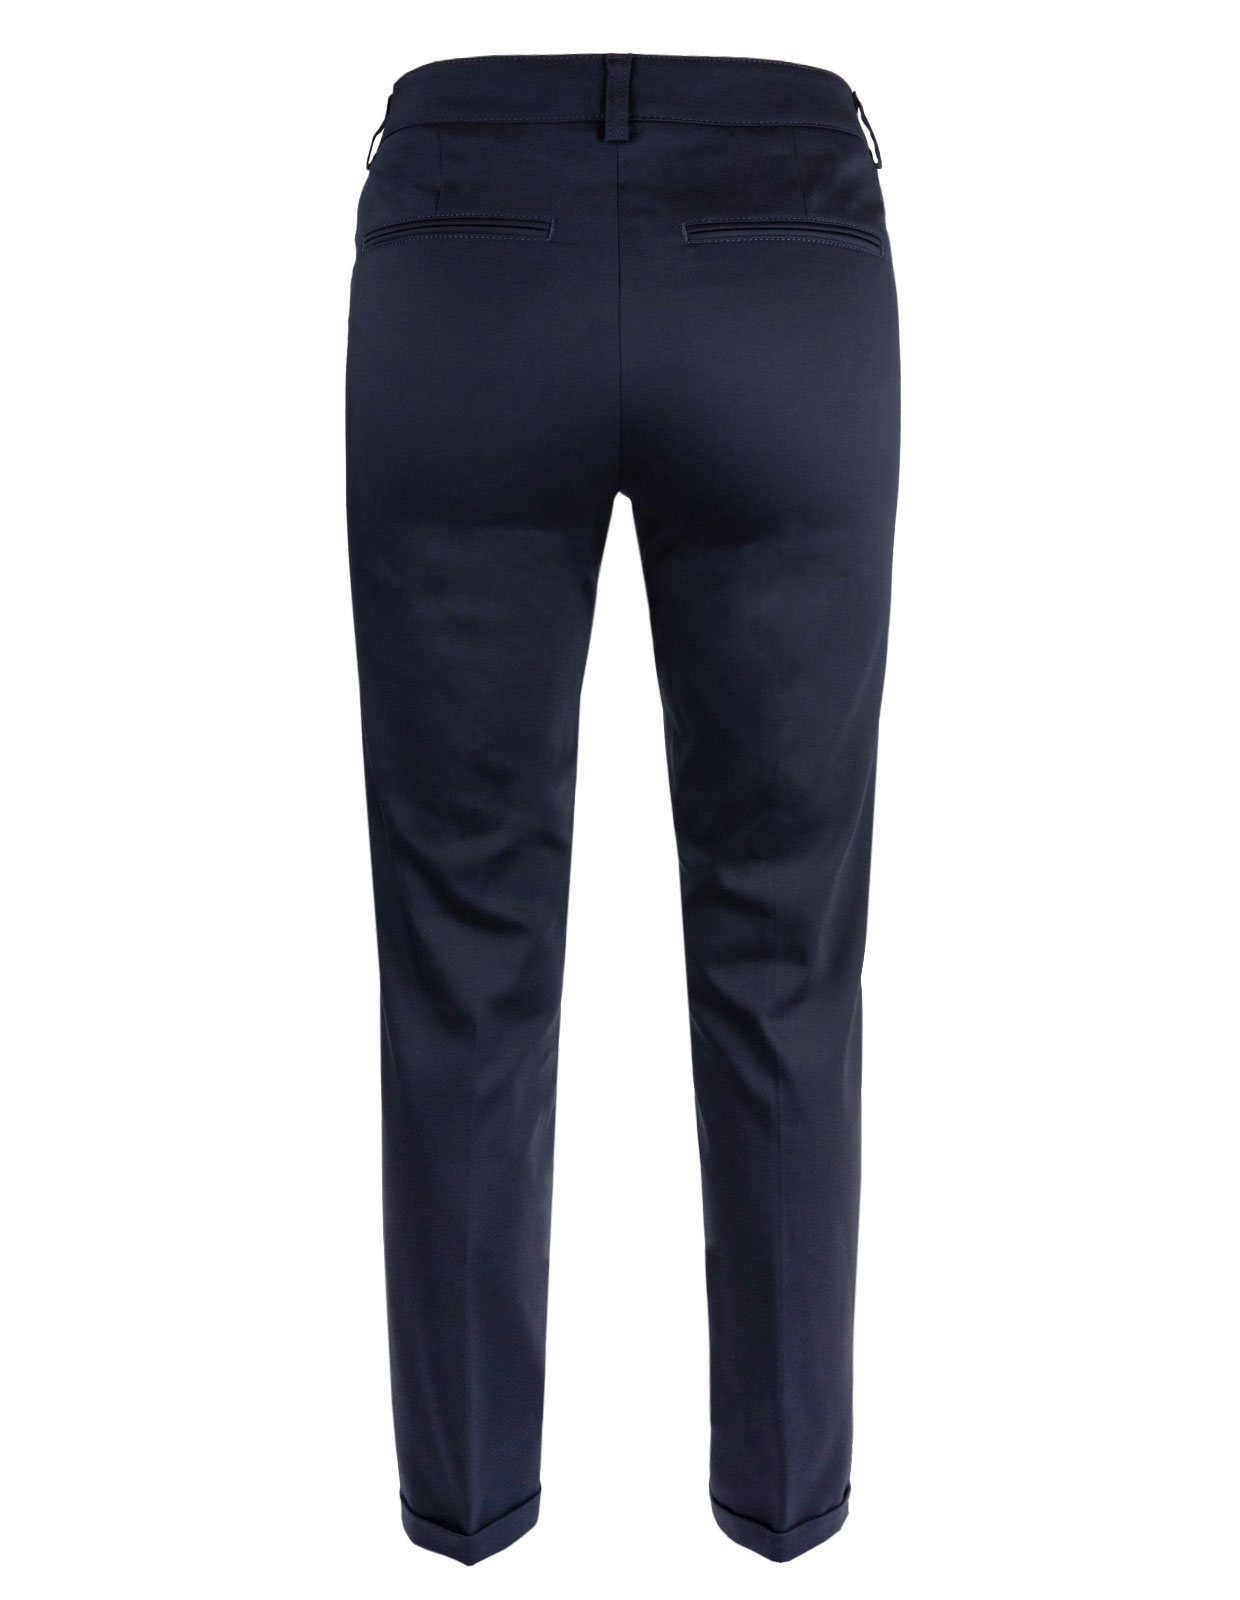 Denise trousers Navy